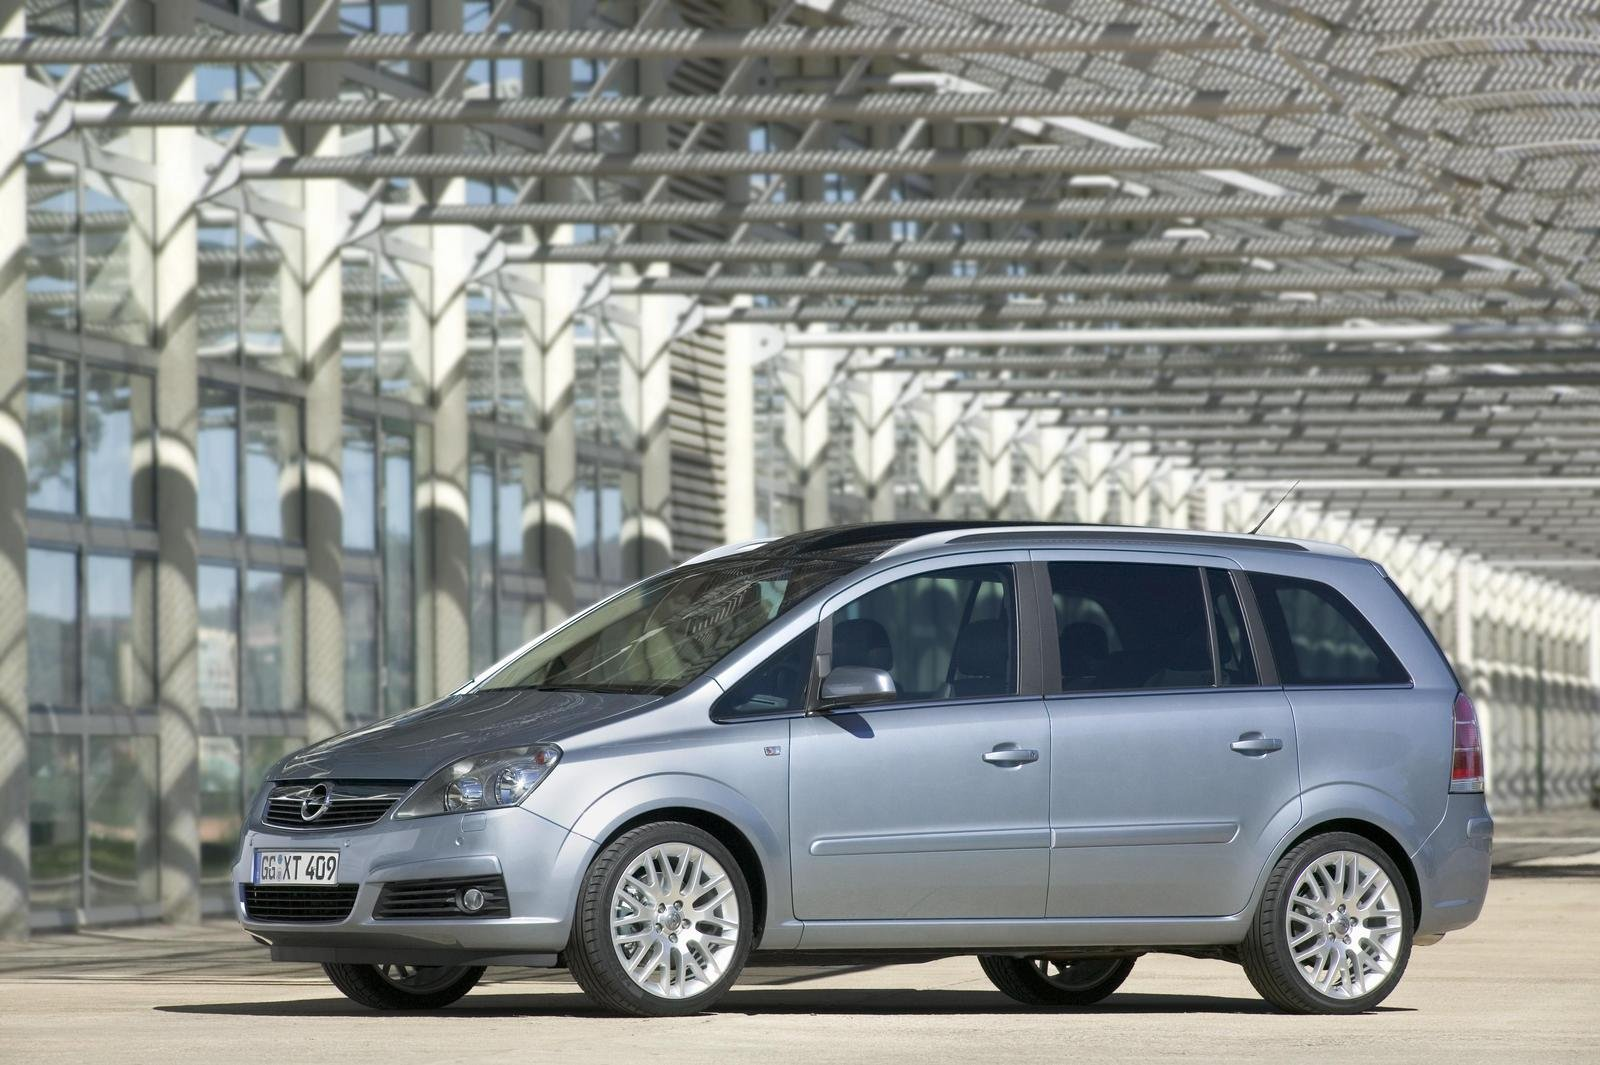 2007 opel zafira picture 163265 car review top speed. Black Bedroom Furniture Sets. Home Design Ideas